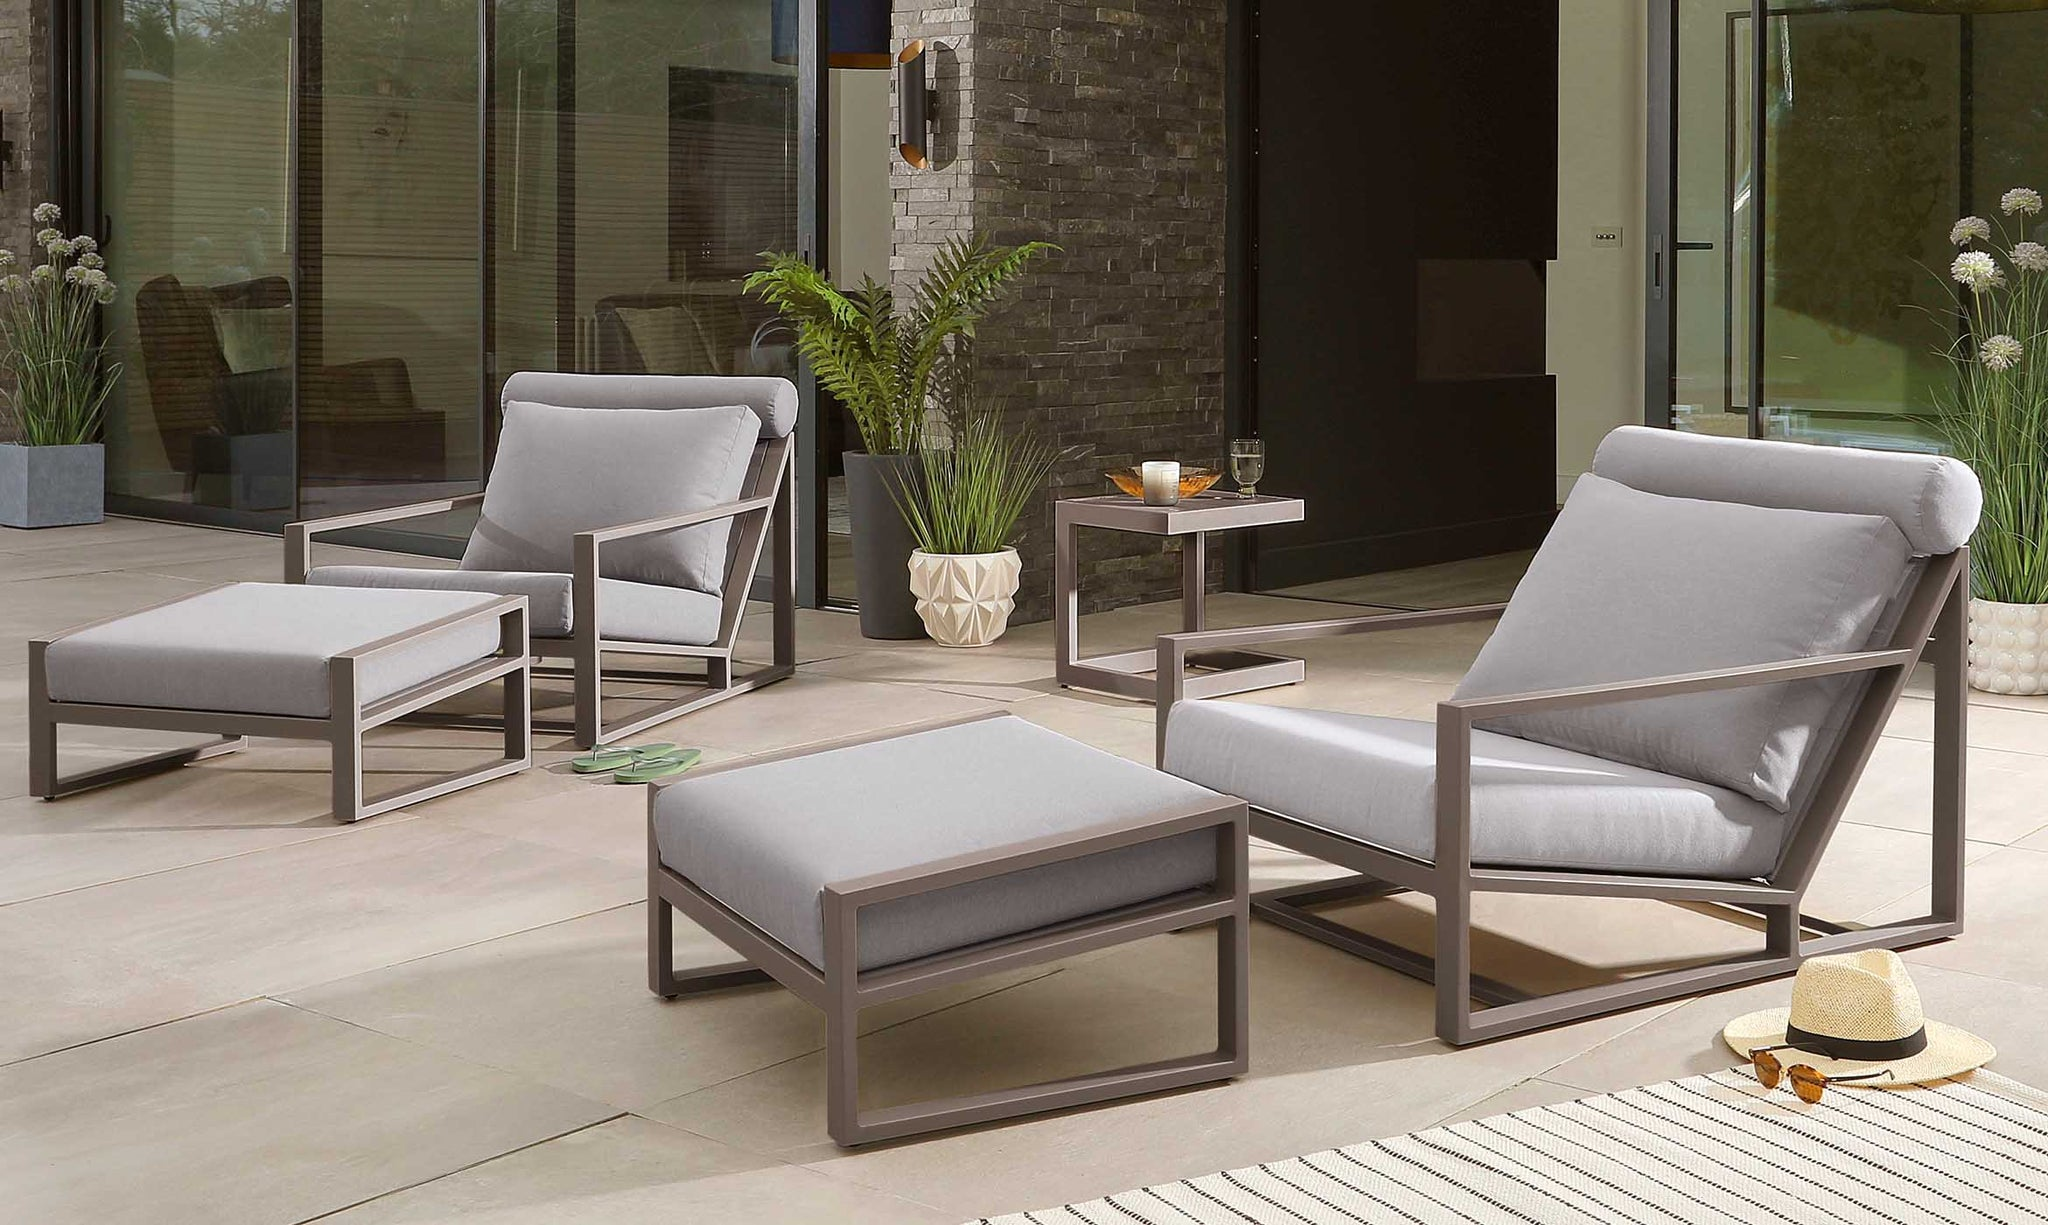 The Danetti Guide To Buying Outdoor Furniture